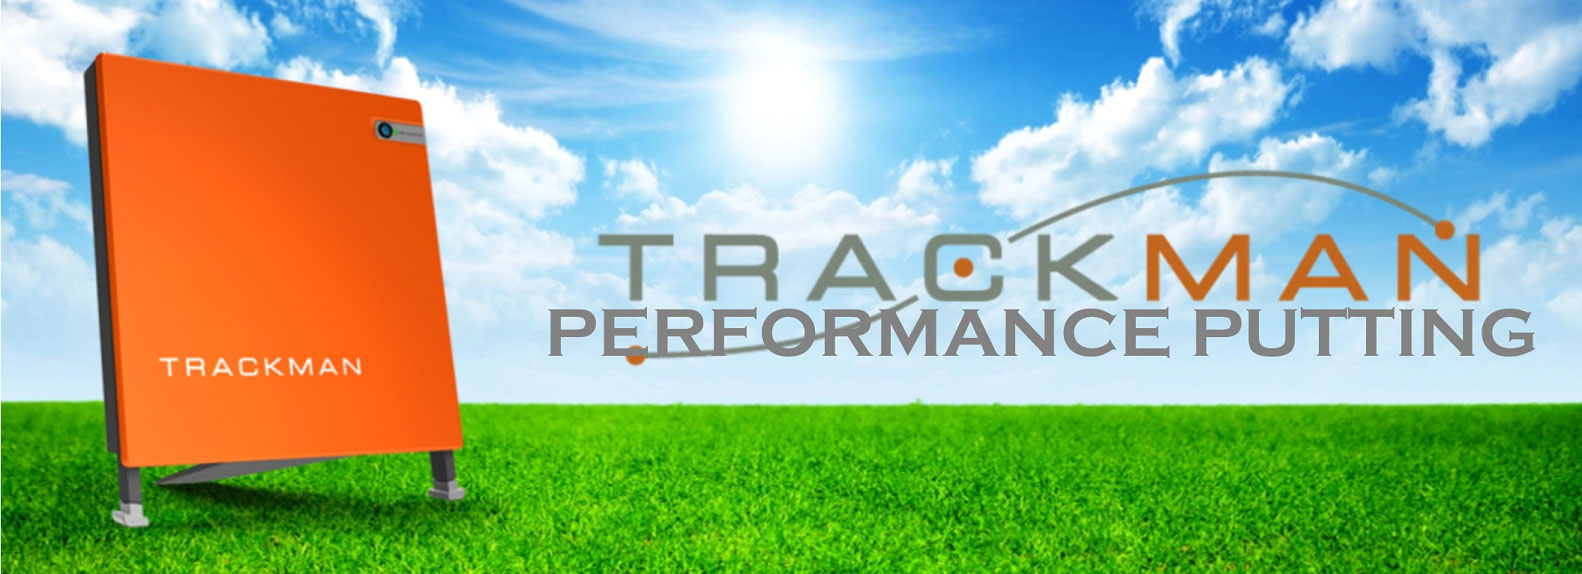 Trackman golf services